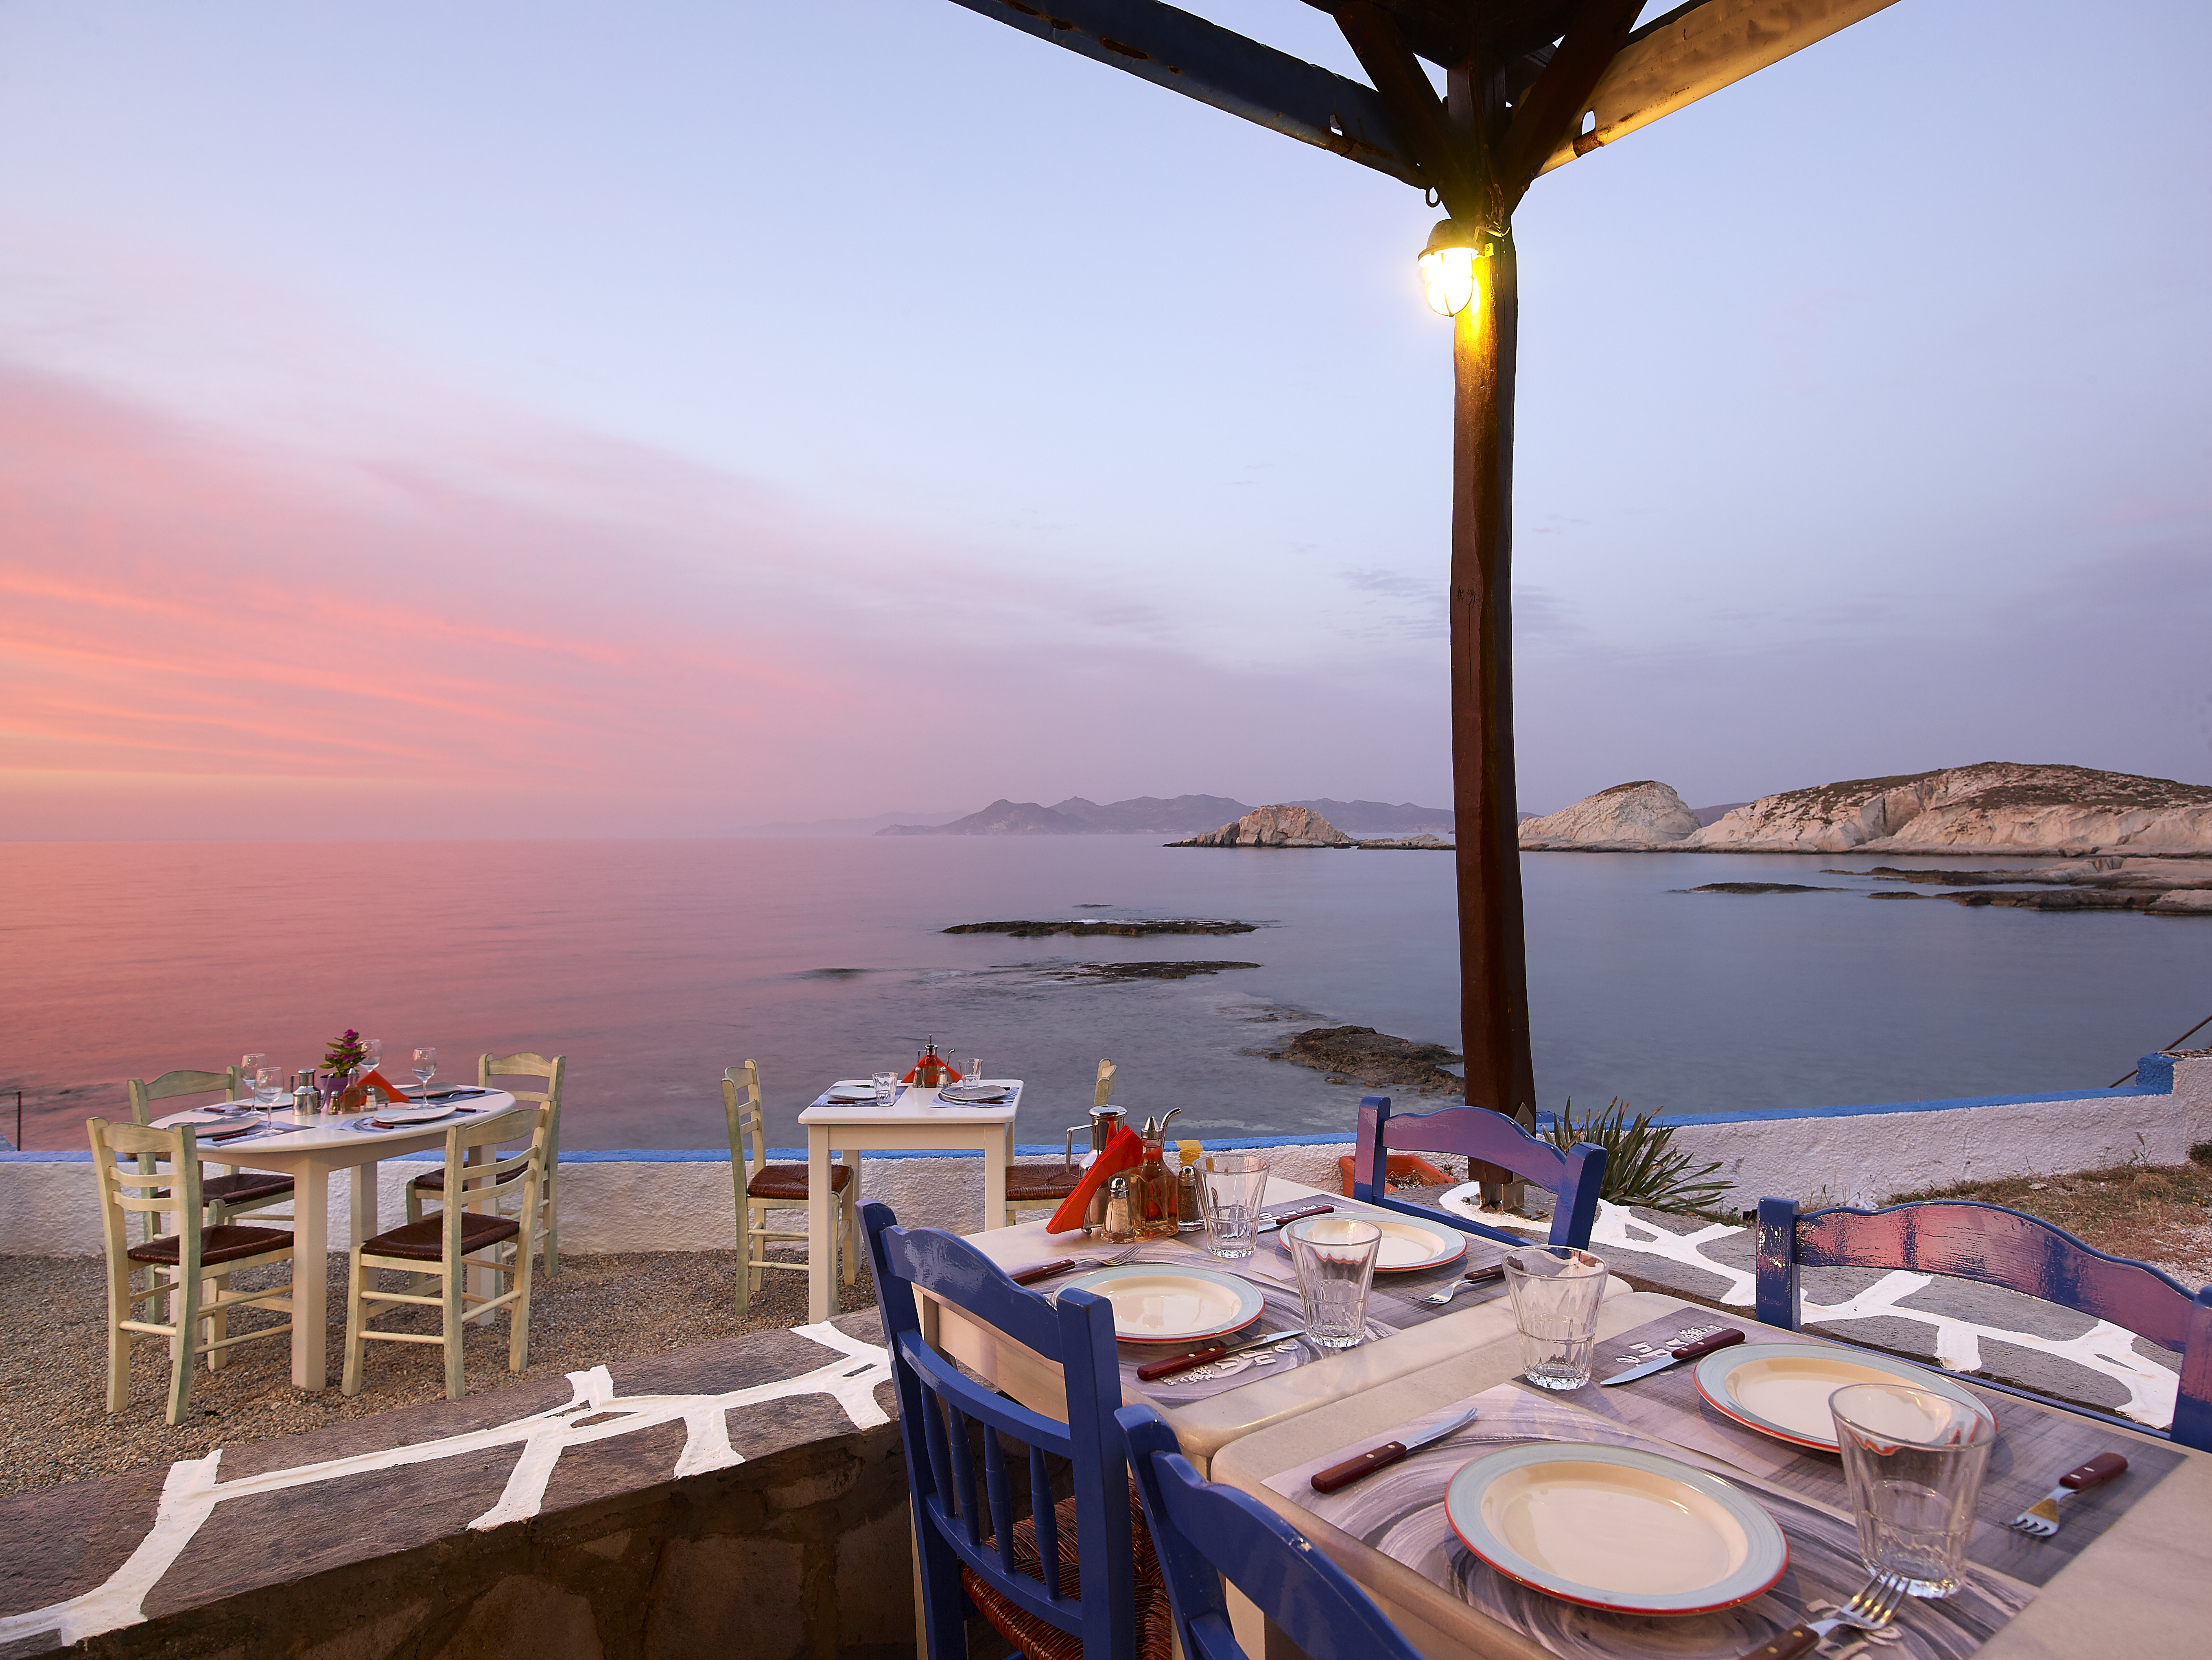 Sea decoration lanscape sunset colours sunsetlovers beauty nature summer summertime eating best dishes Medusa restaurant Milos island Cyclades Greece - Αντιγραφή